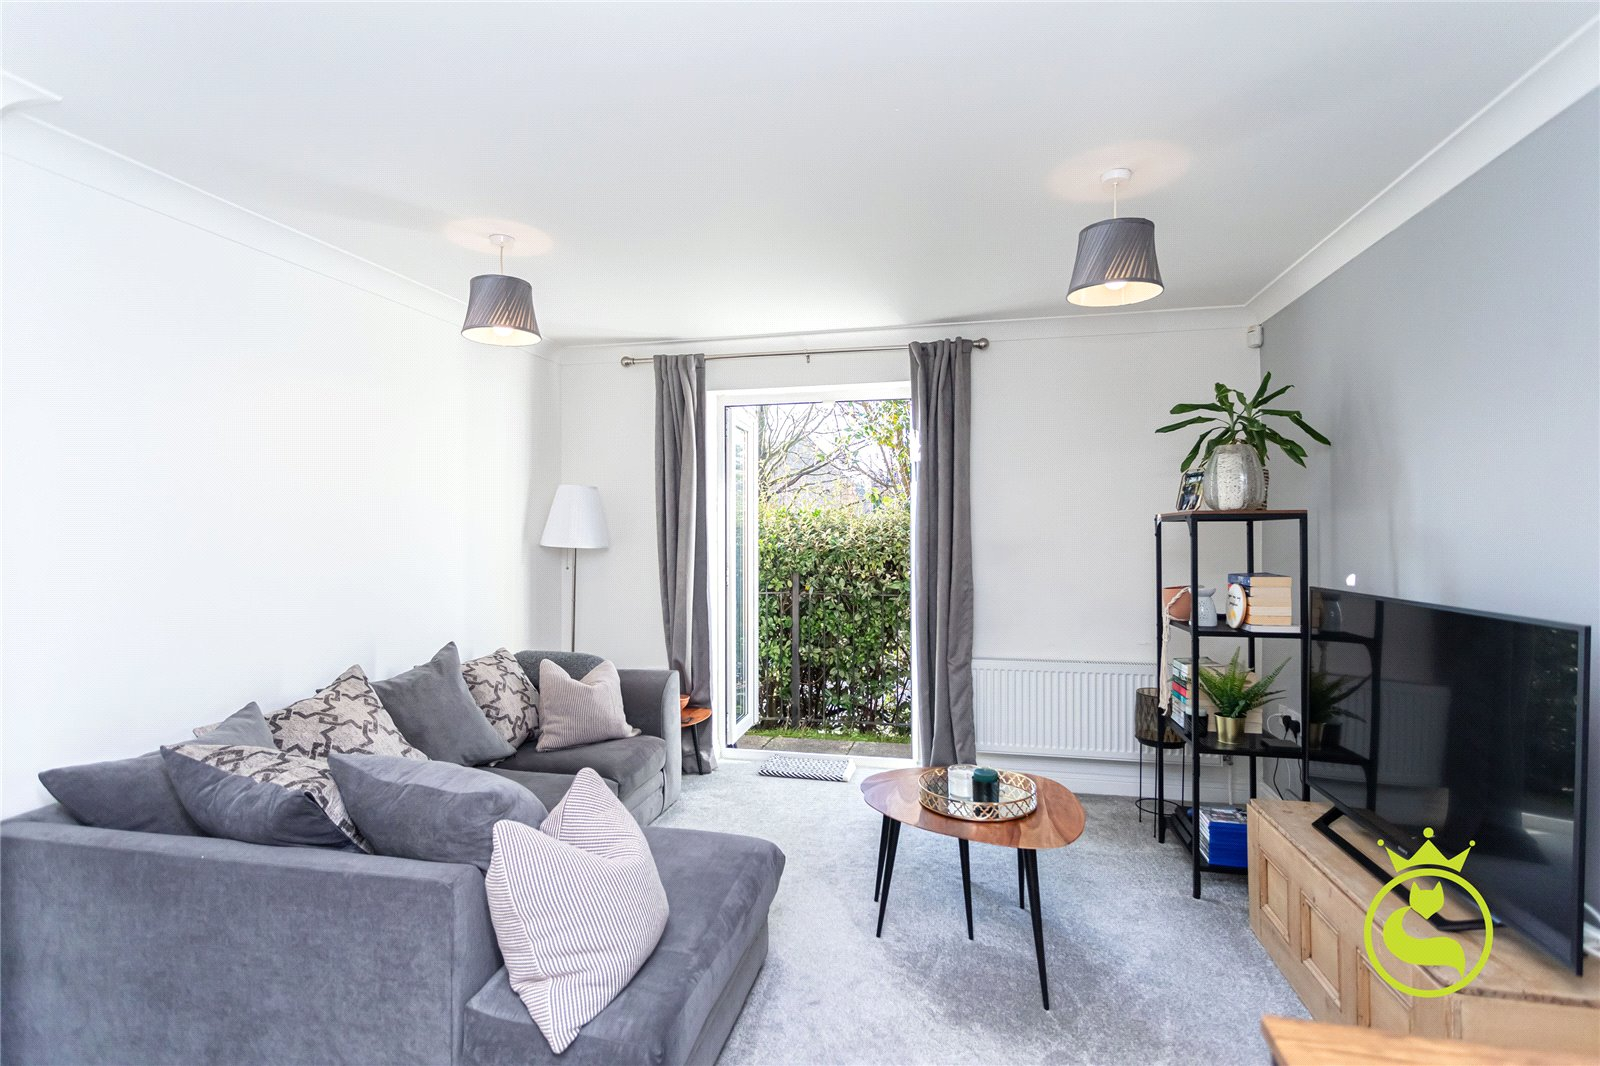 2 bed apartment for sale in Doulton Gardens, Lower Parkstone, BH14